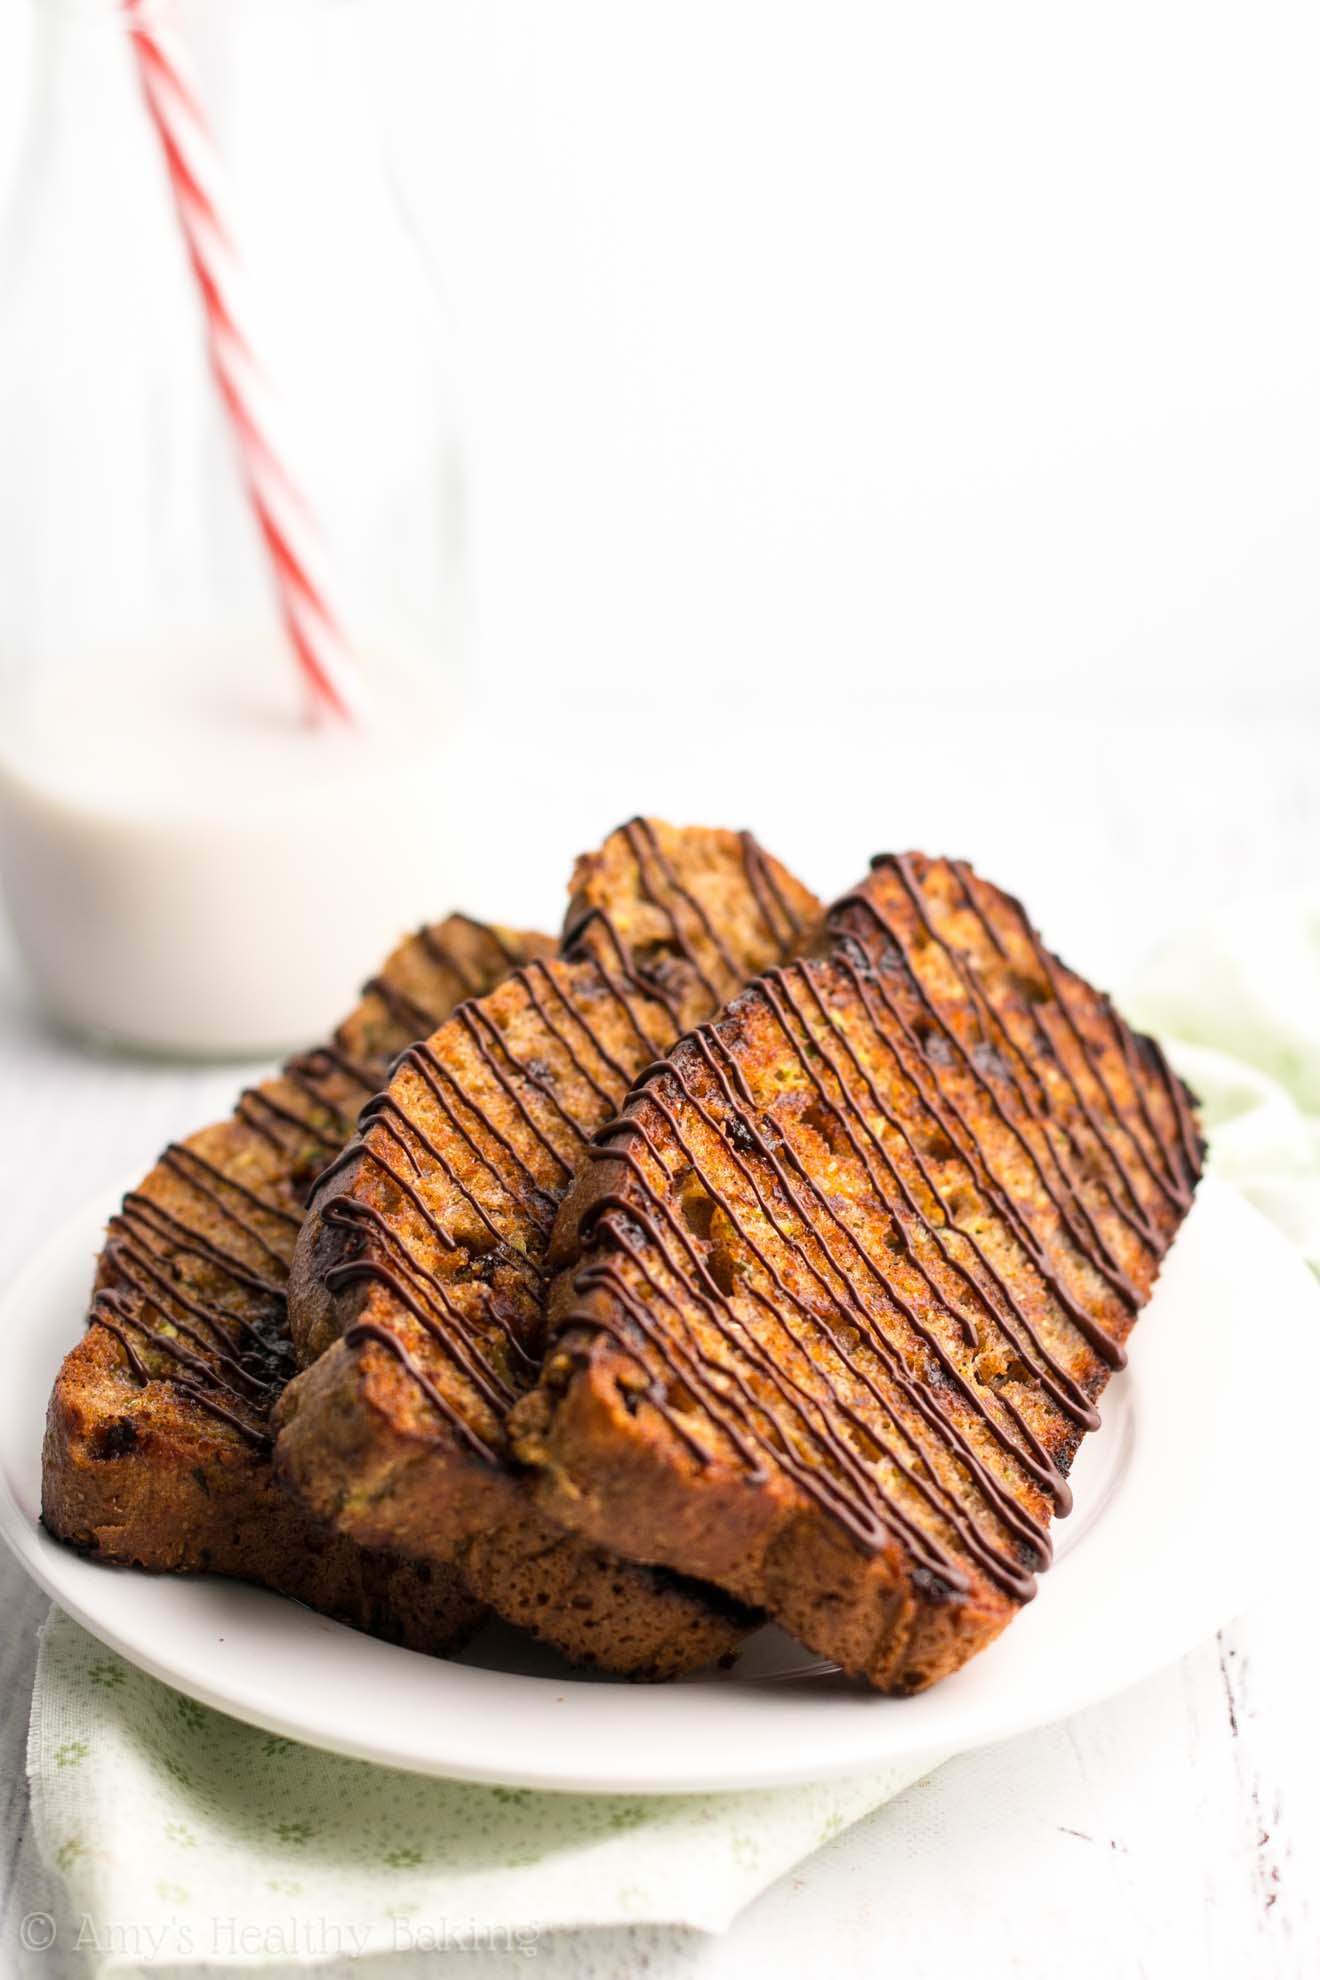 Grilled Chocolate Chip Zucchini Bread | Amy's Healthy Baking